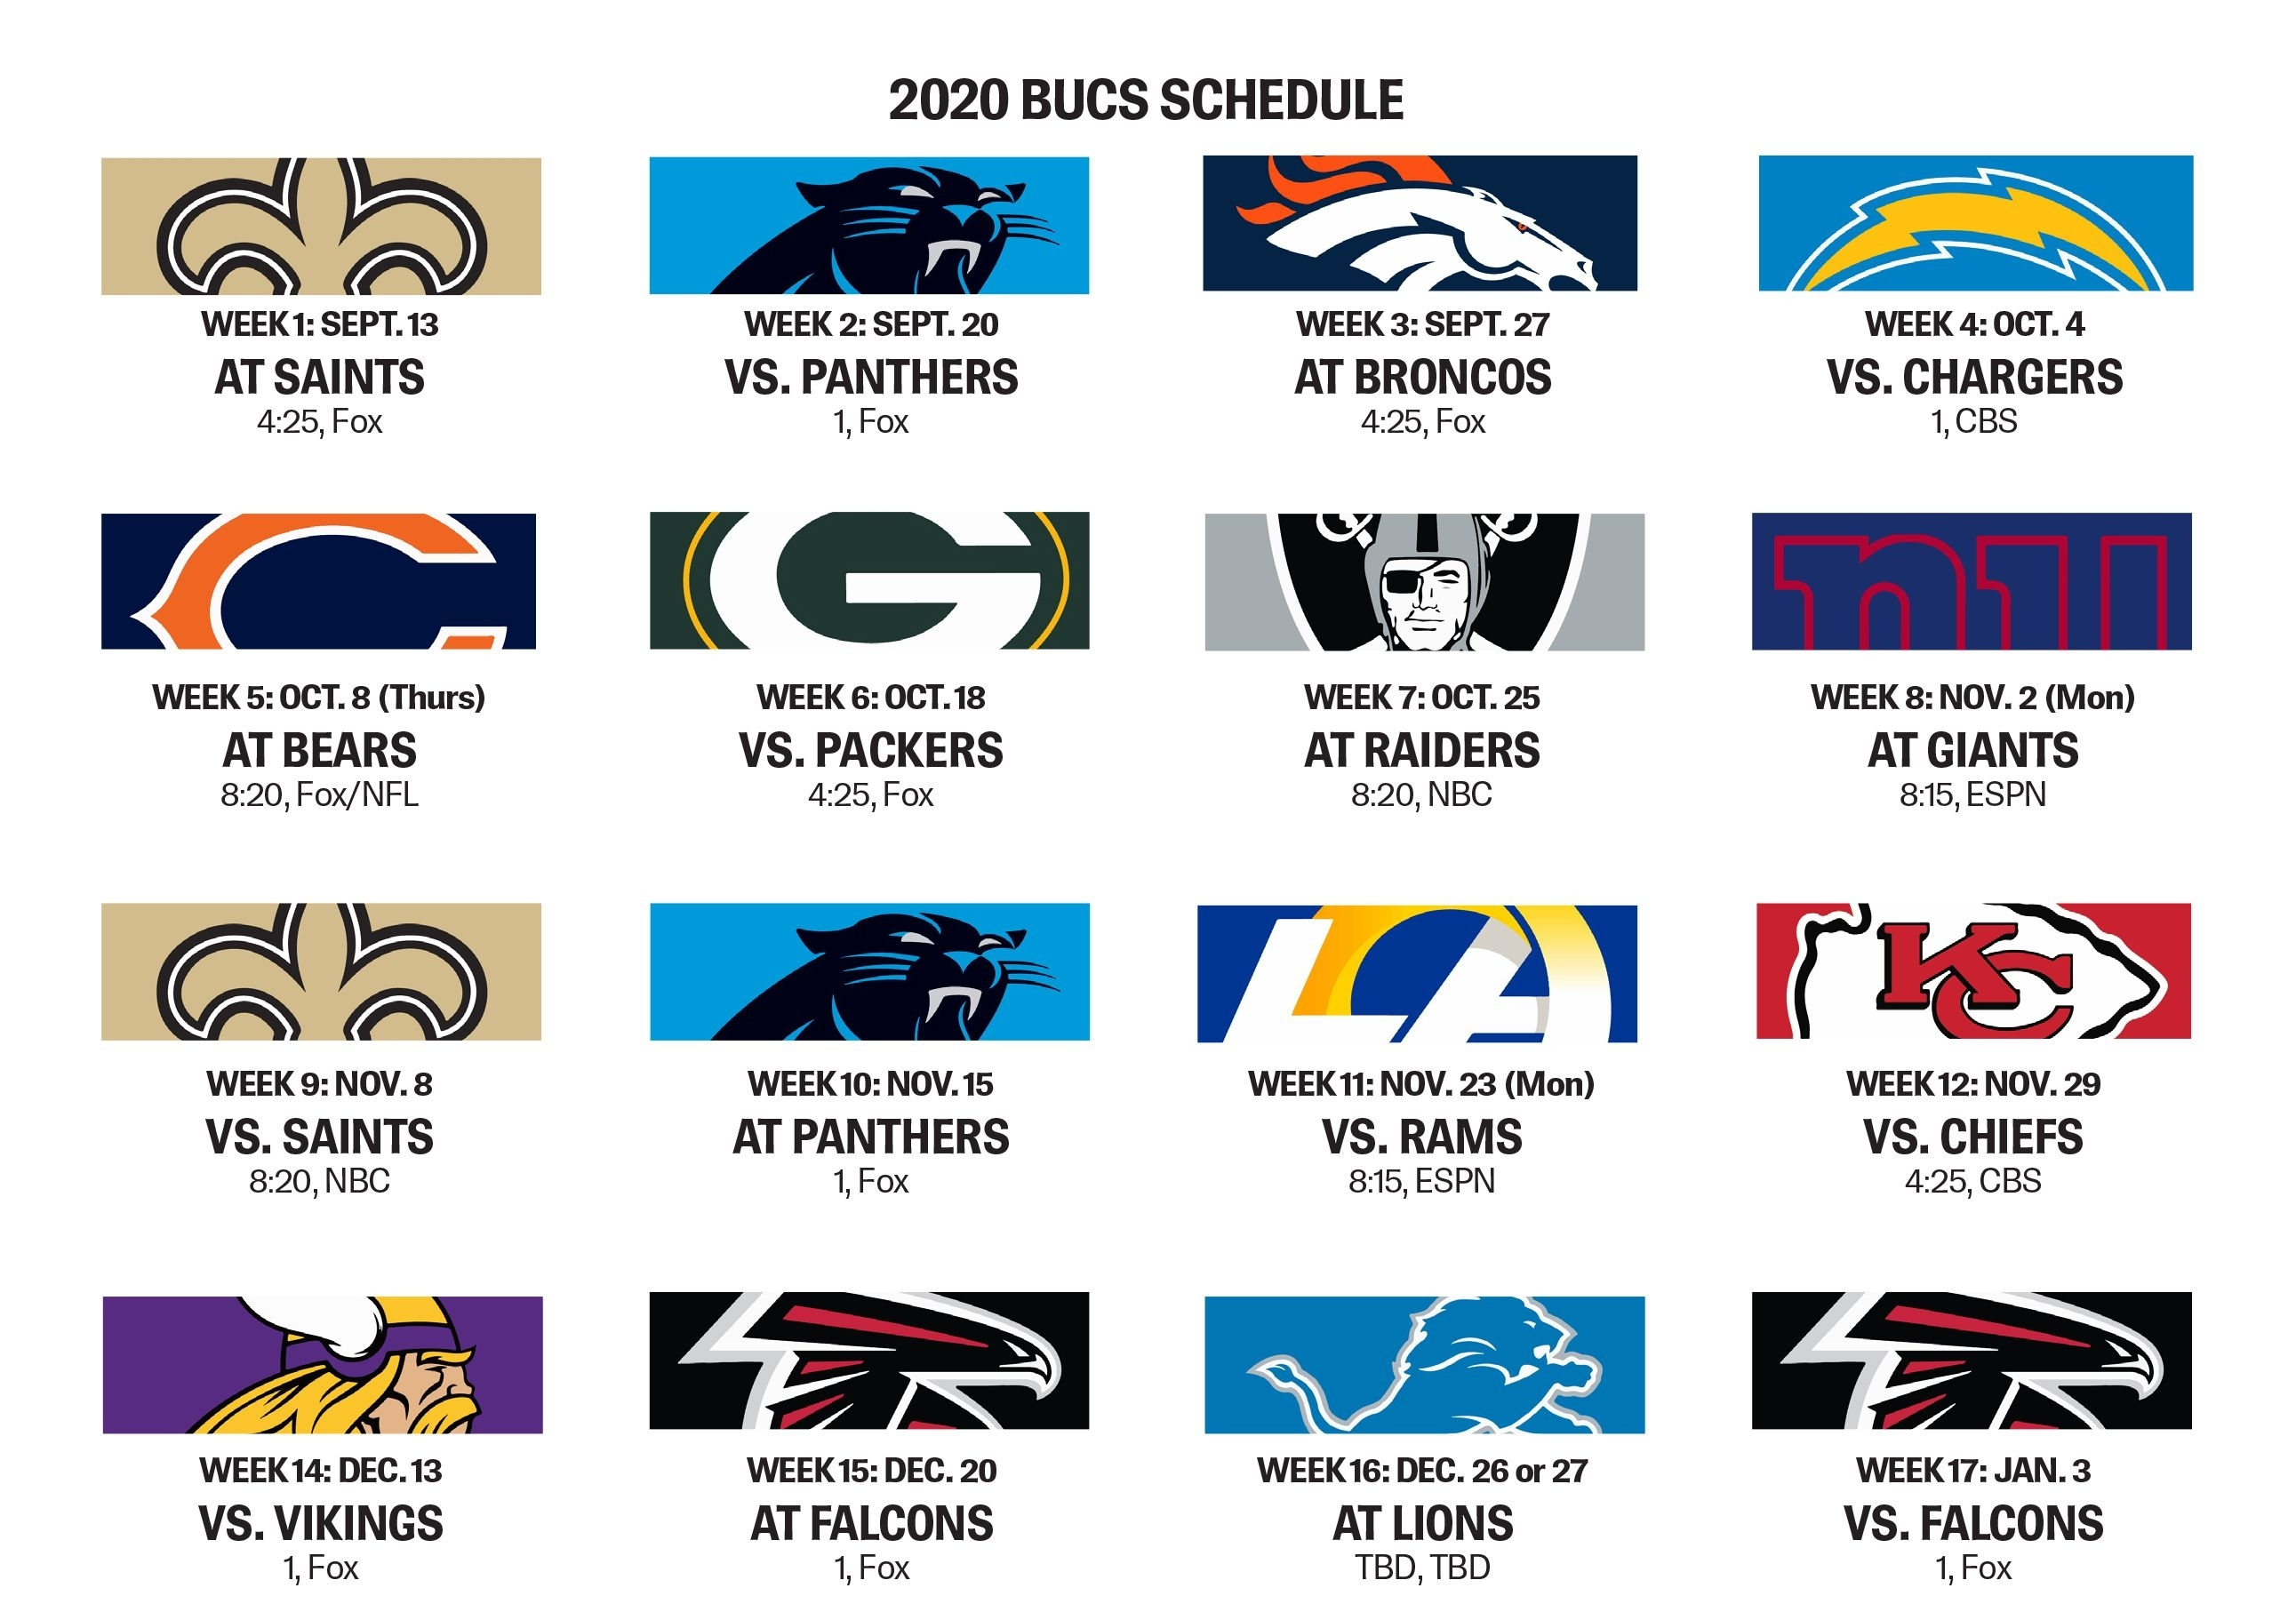 Bucs Open With Saints, Have Five Prime-Time Games Slated pertaining to Printable Nfl Schedule 2019 2020